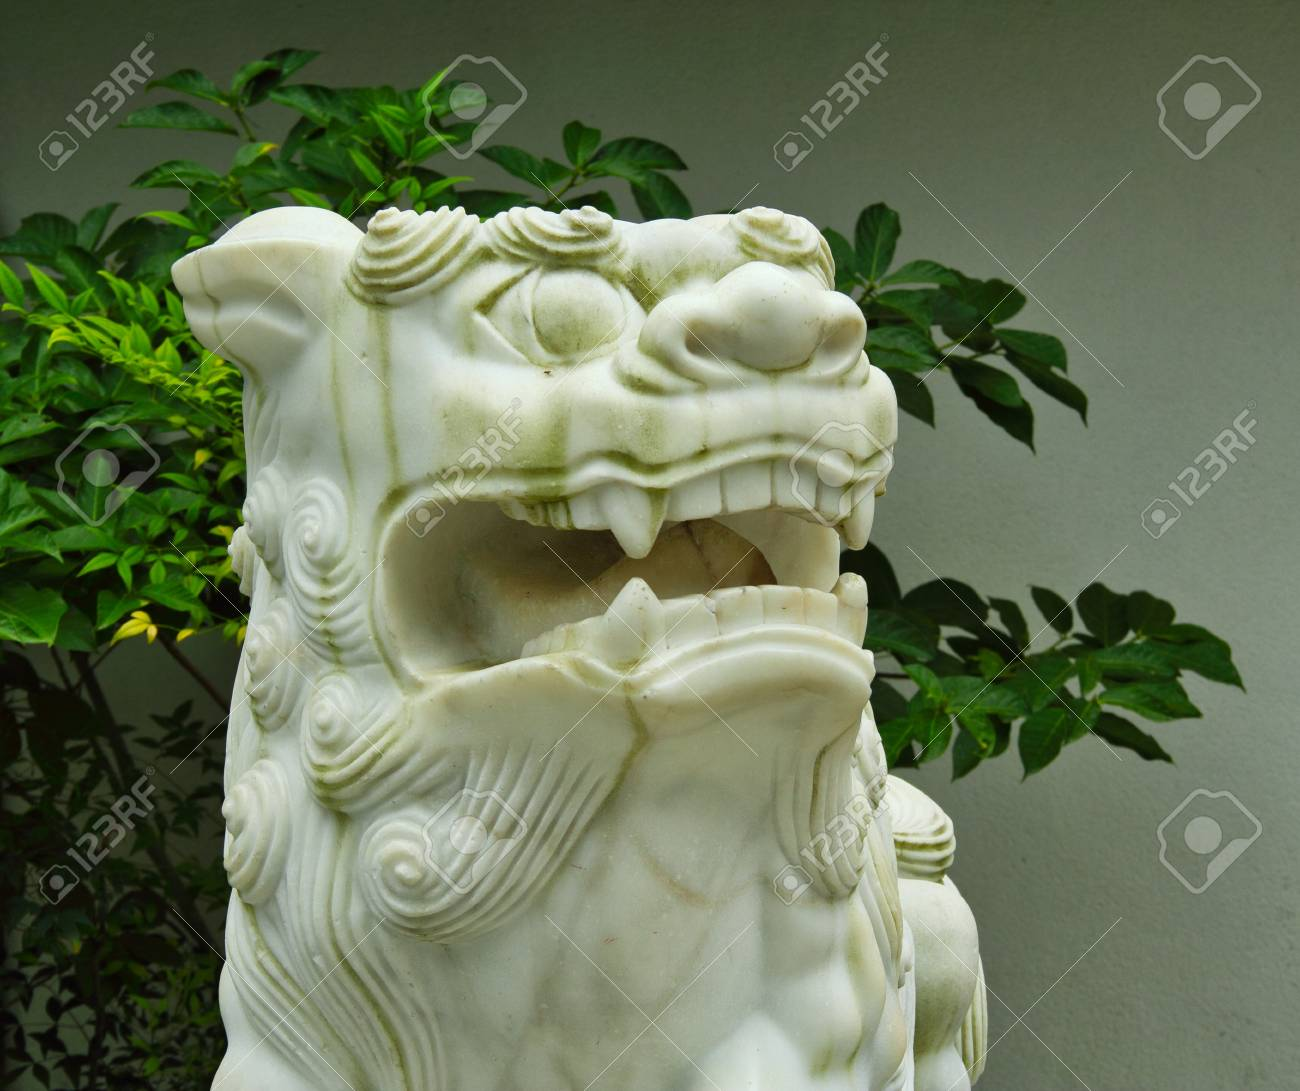 A white statue of a lion showing teeth and looking to the right